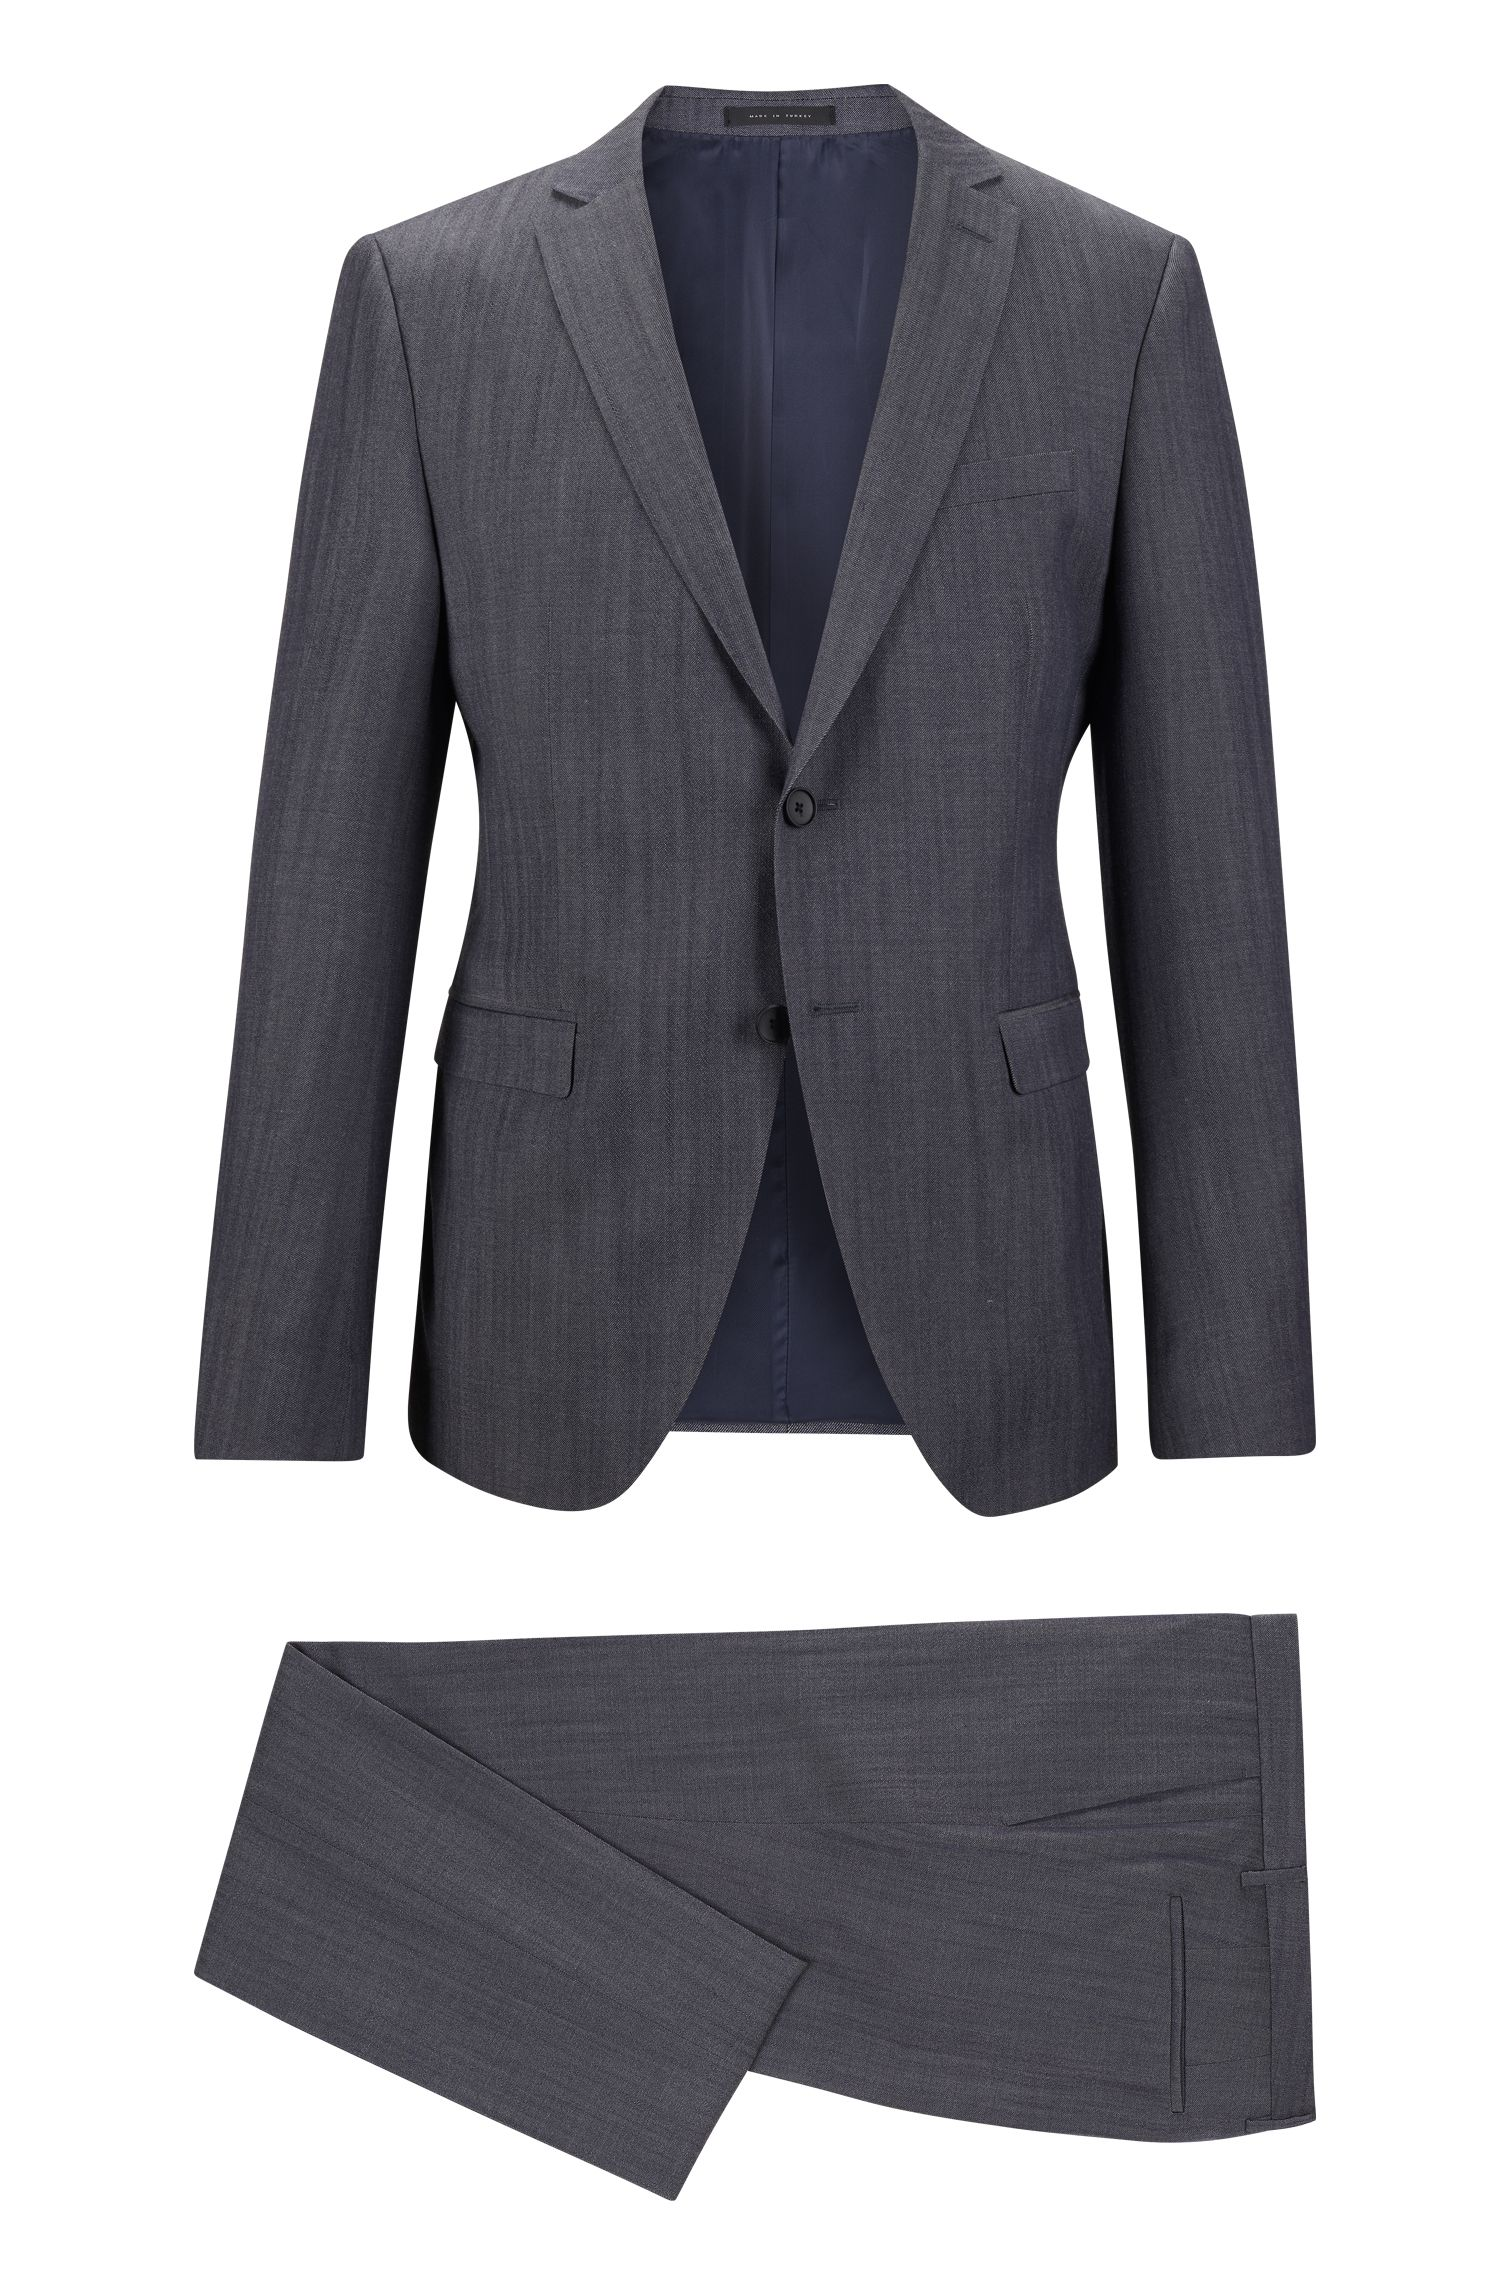 Denim Virgin Wool Suit, Extra-Slim Fit | Reyno/Wenton